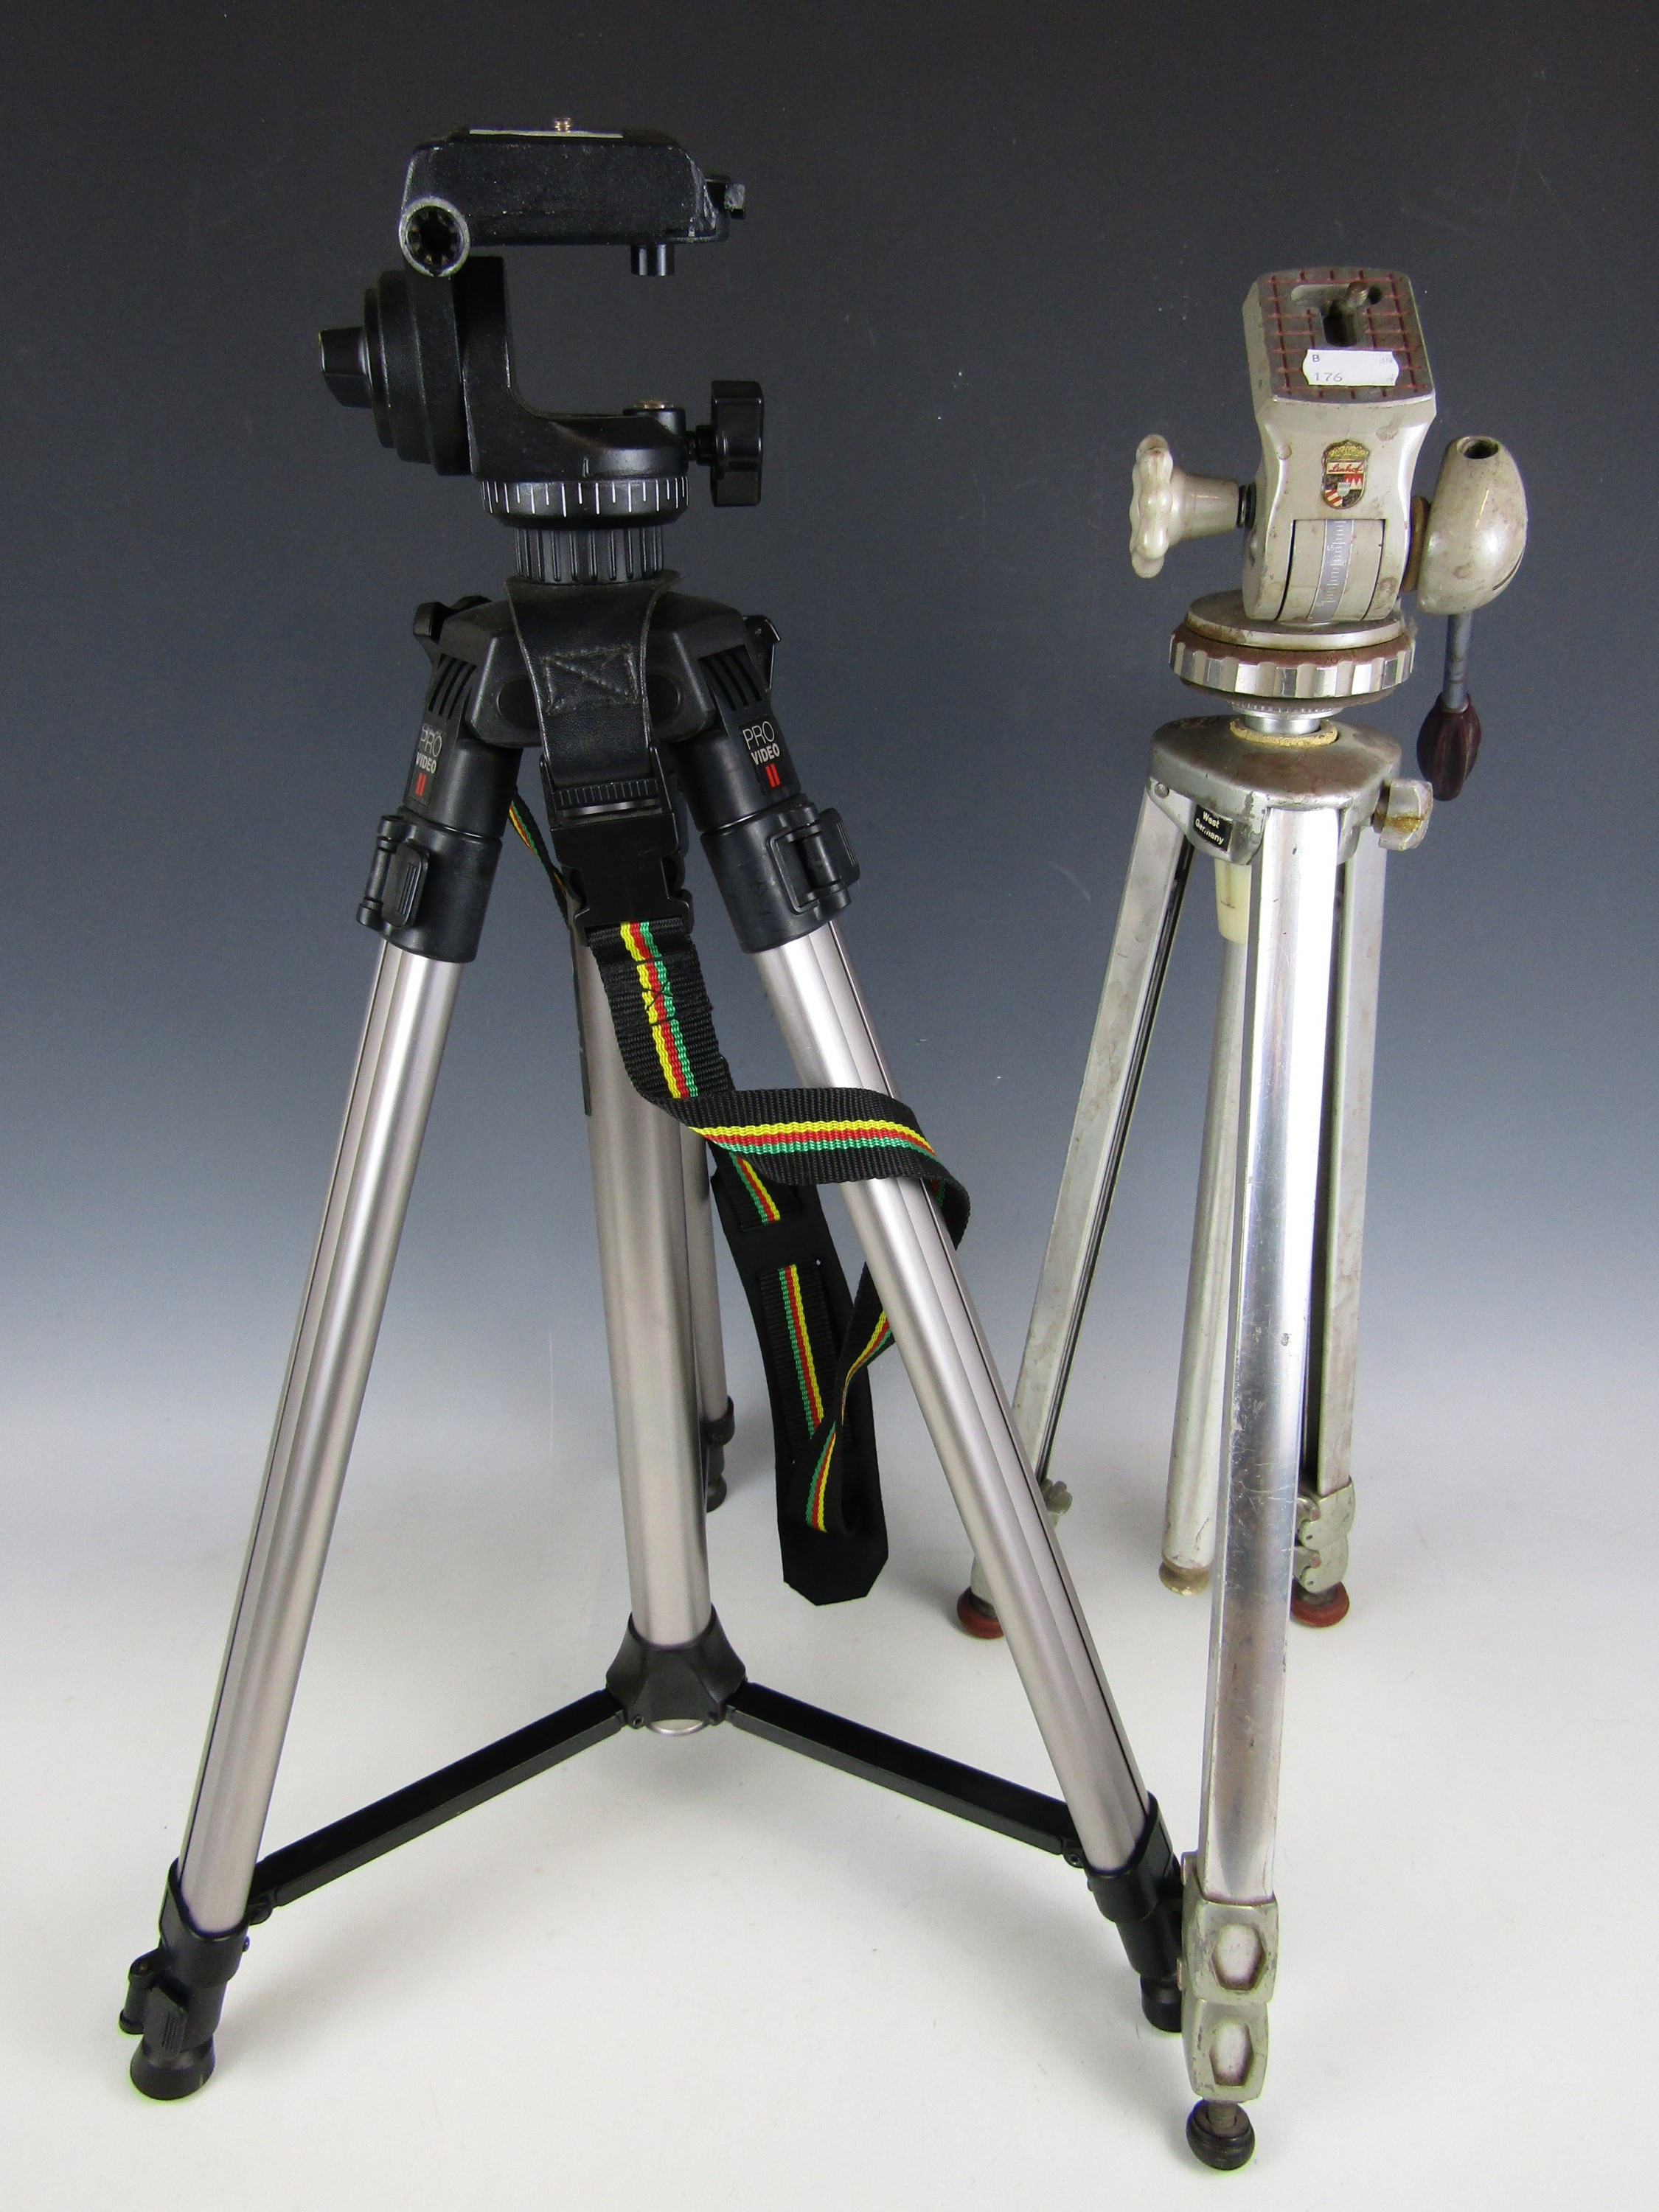 Lot 1 - Two vintage camera tripods including a Linhof and a Pro Video